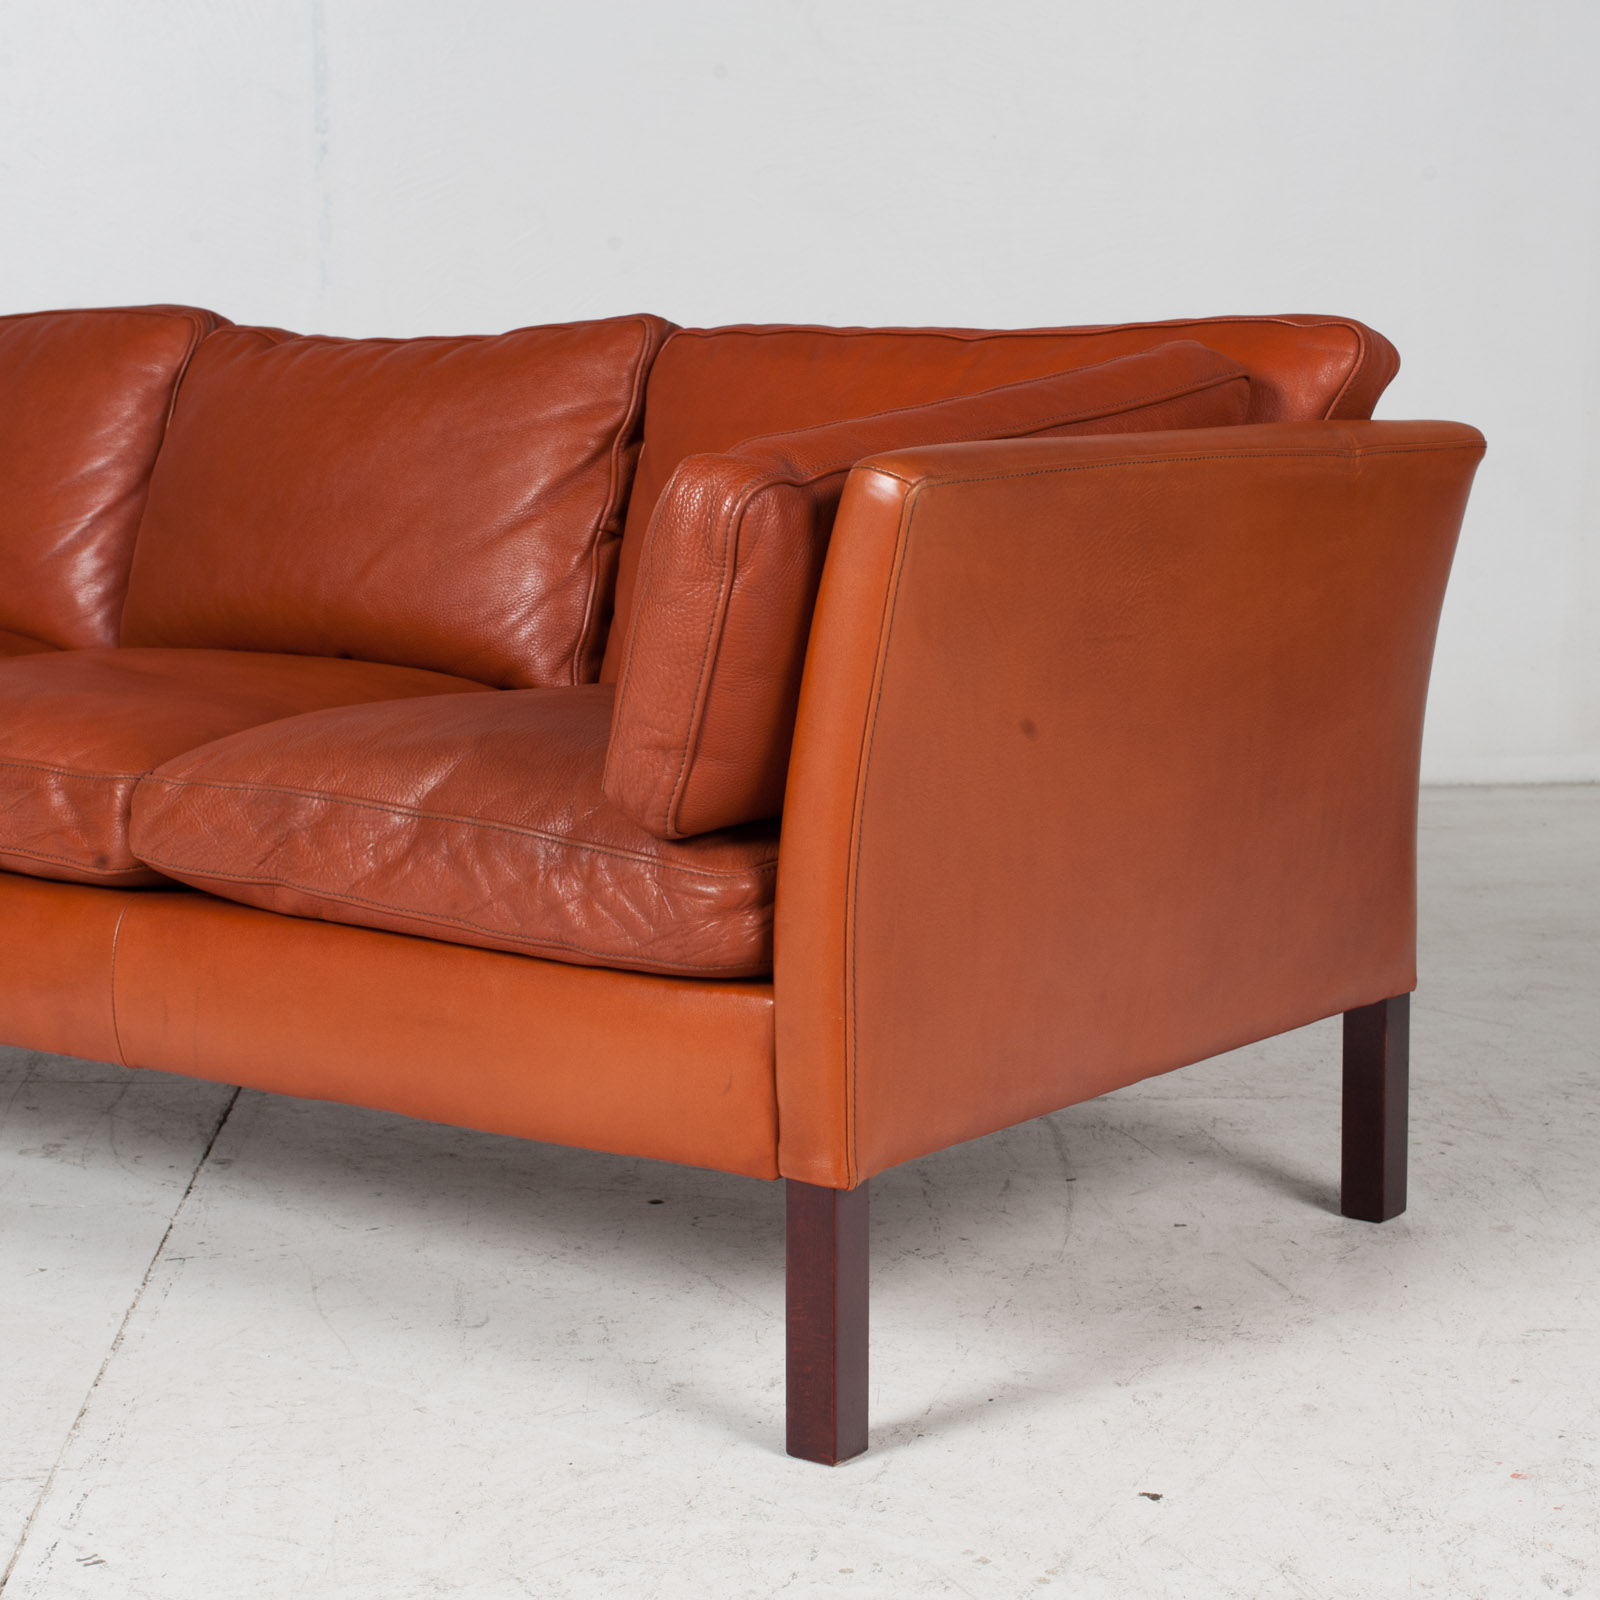 3 Seat Sofa By Stouby In Tan Leather, 1960s, Denmark 7